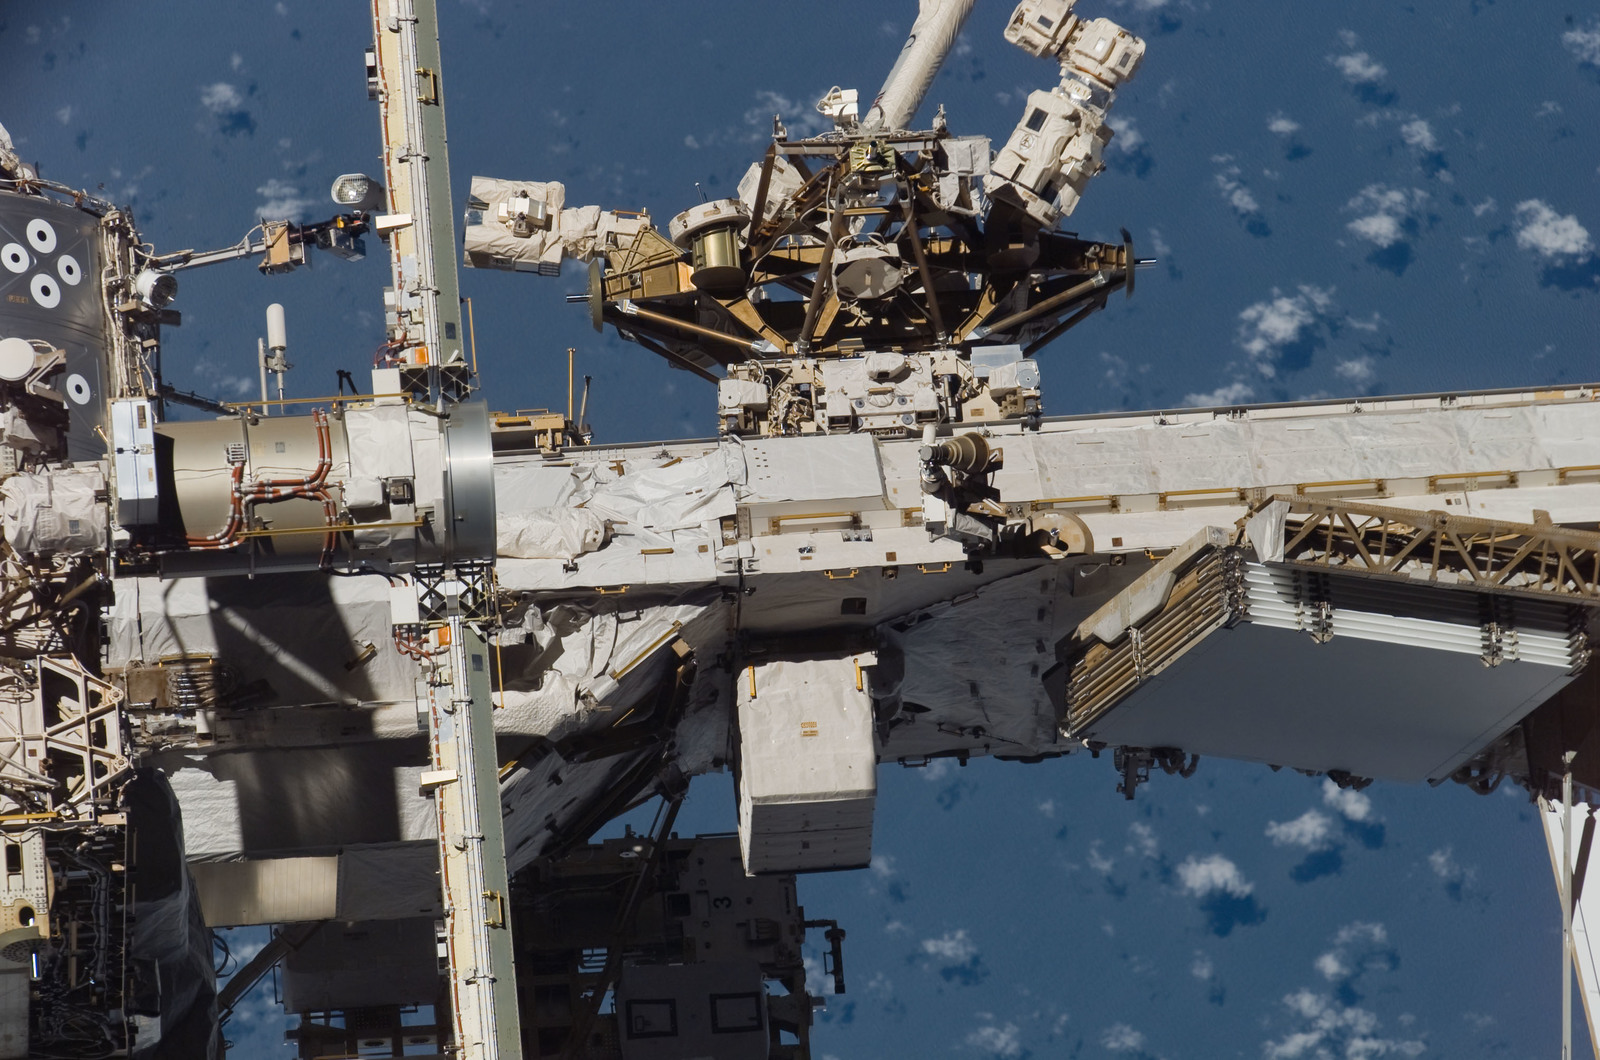 S117E08792 - STS-117 - MBS,MT, SSRMS or Canadarm2, and P1 Truss taken during STS-117 Mission